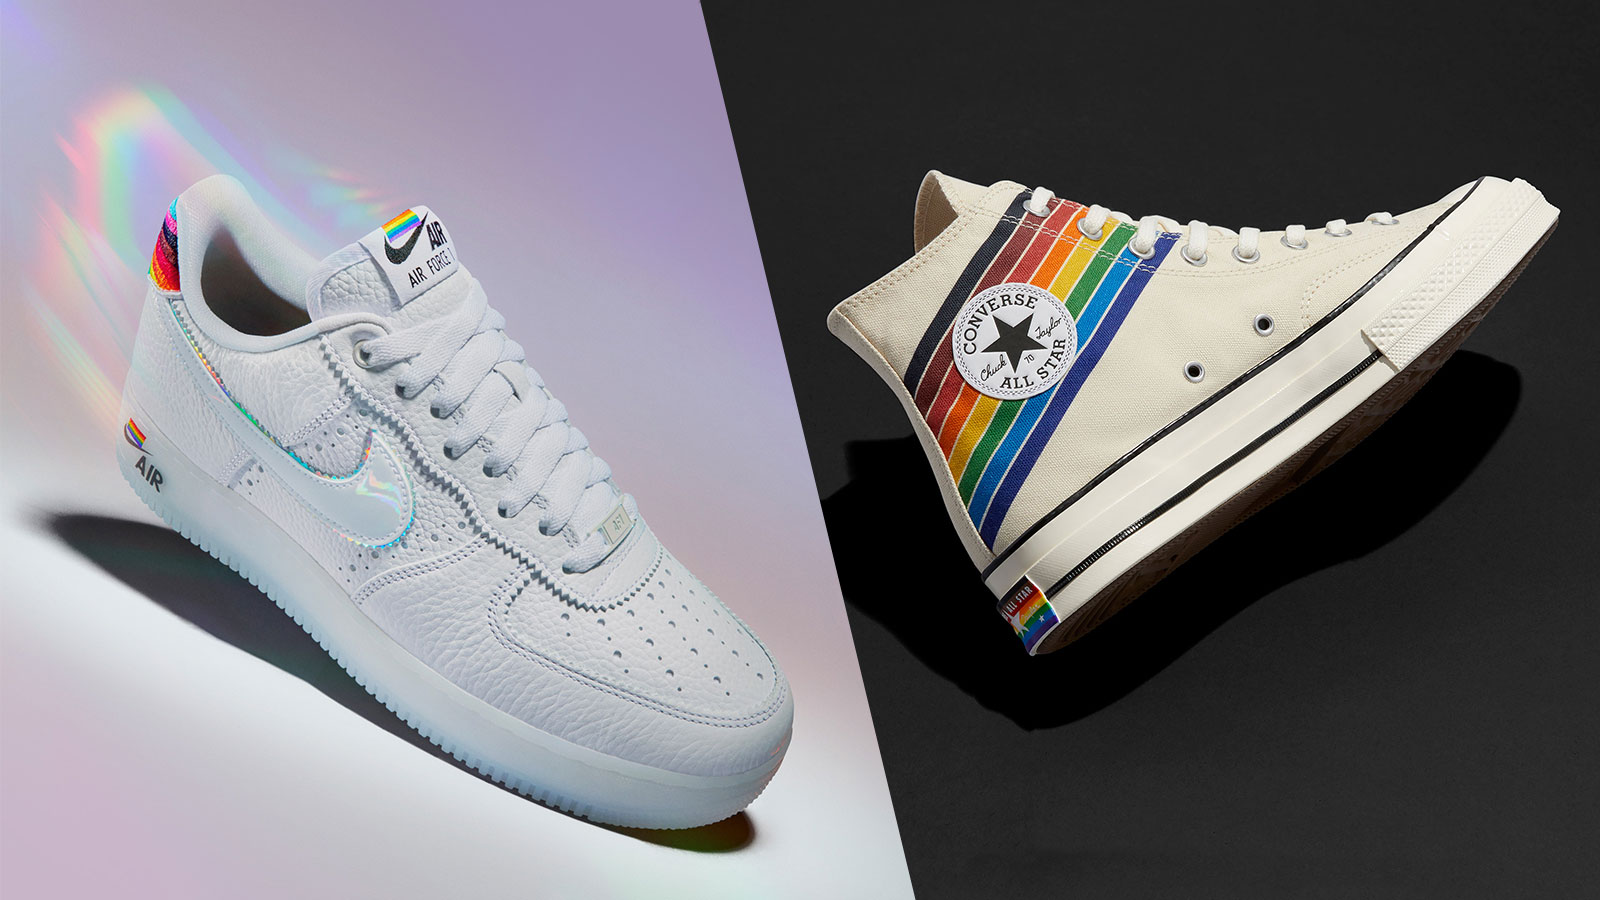 Nike BeTrue and the Converse Pride Footwear 2020 Collections